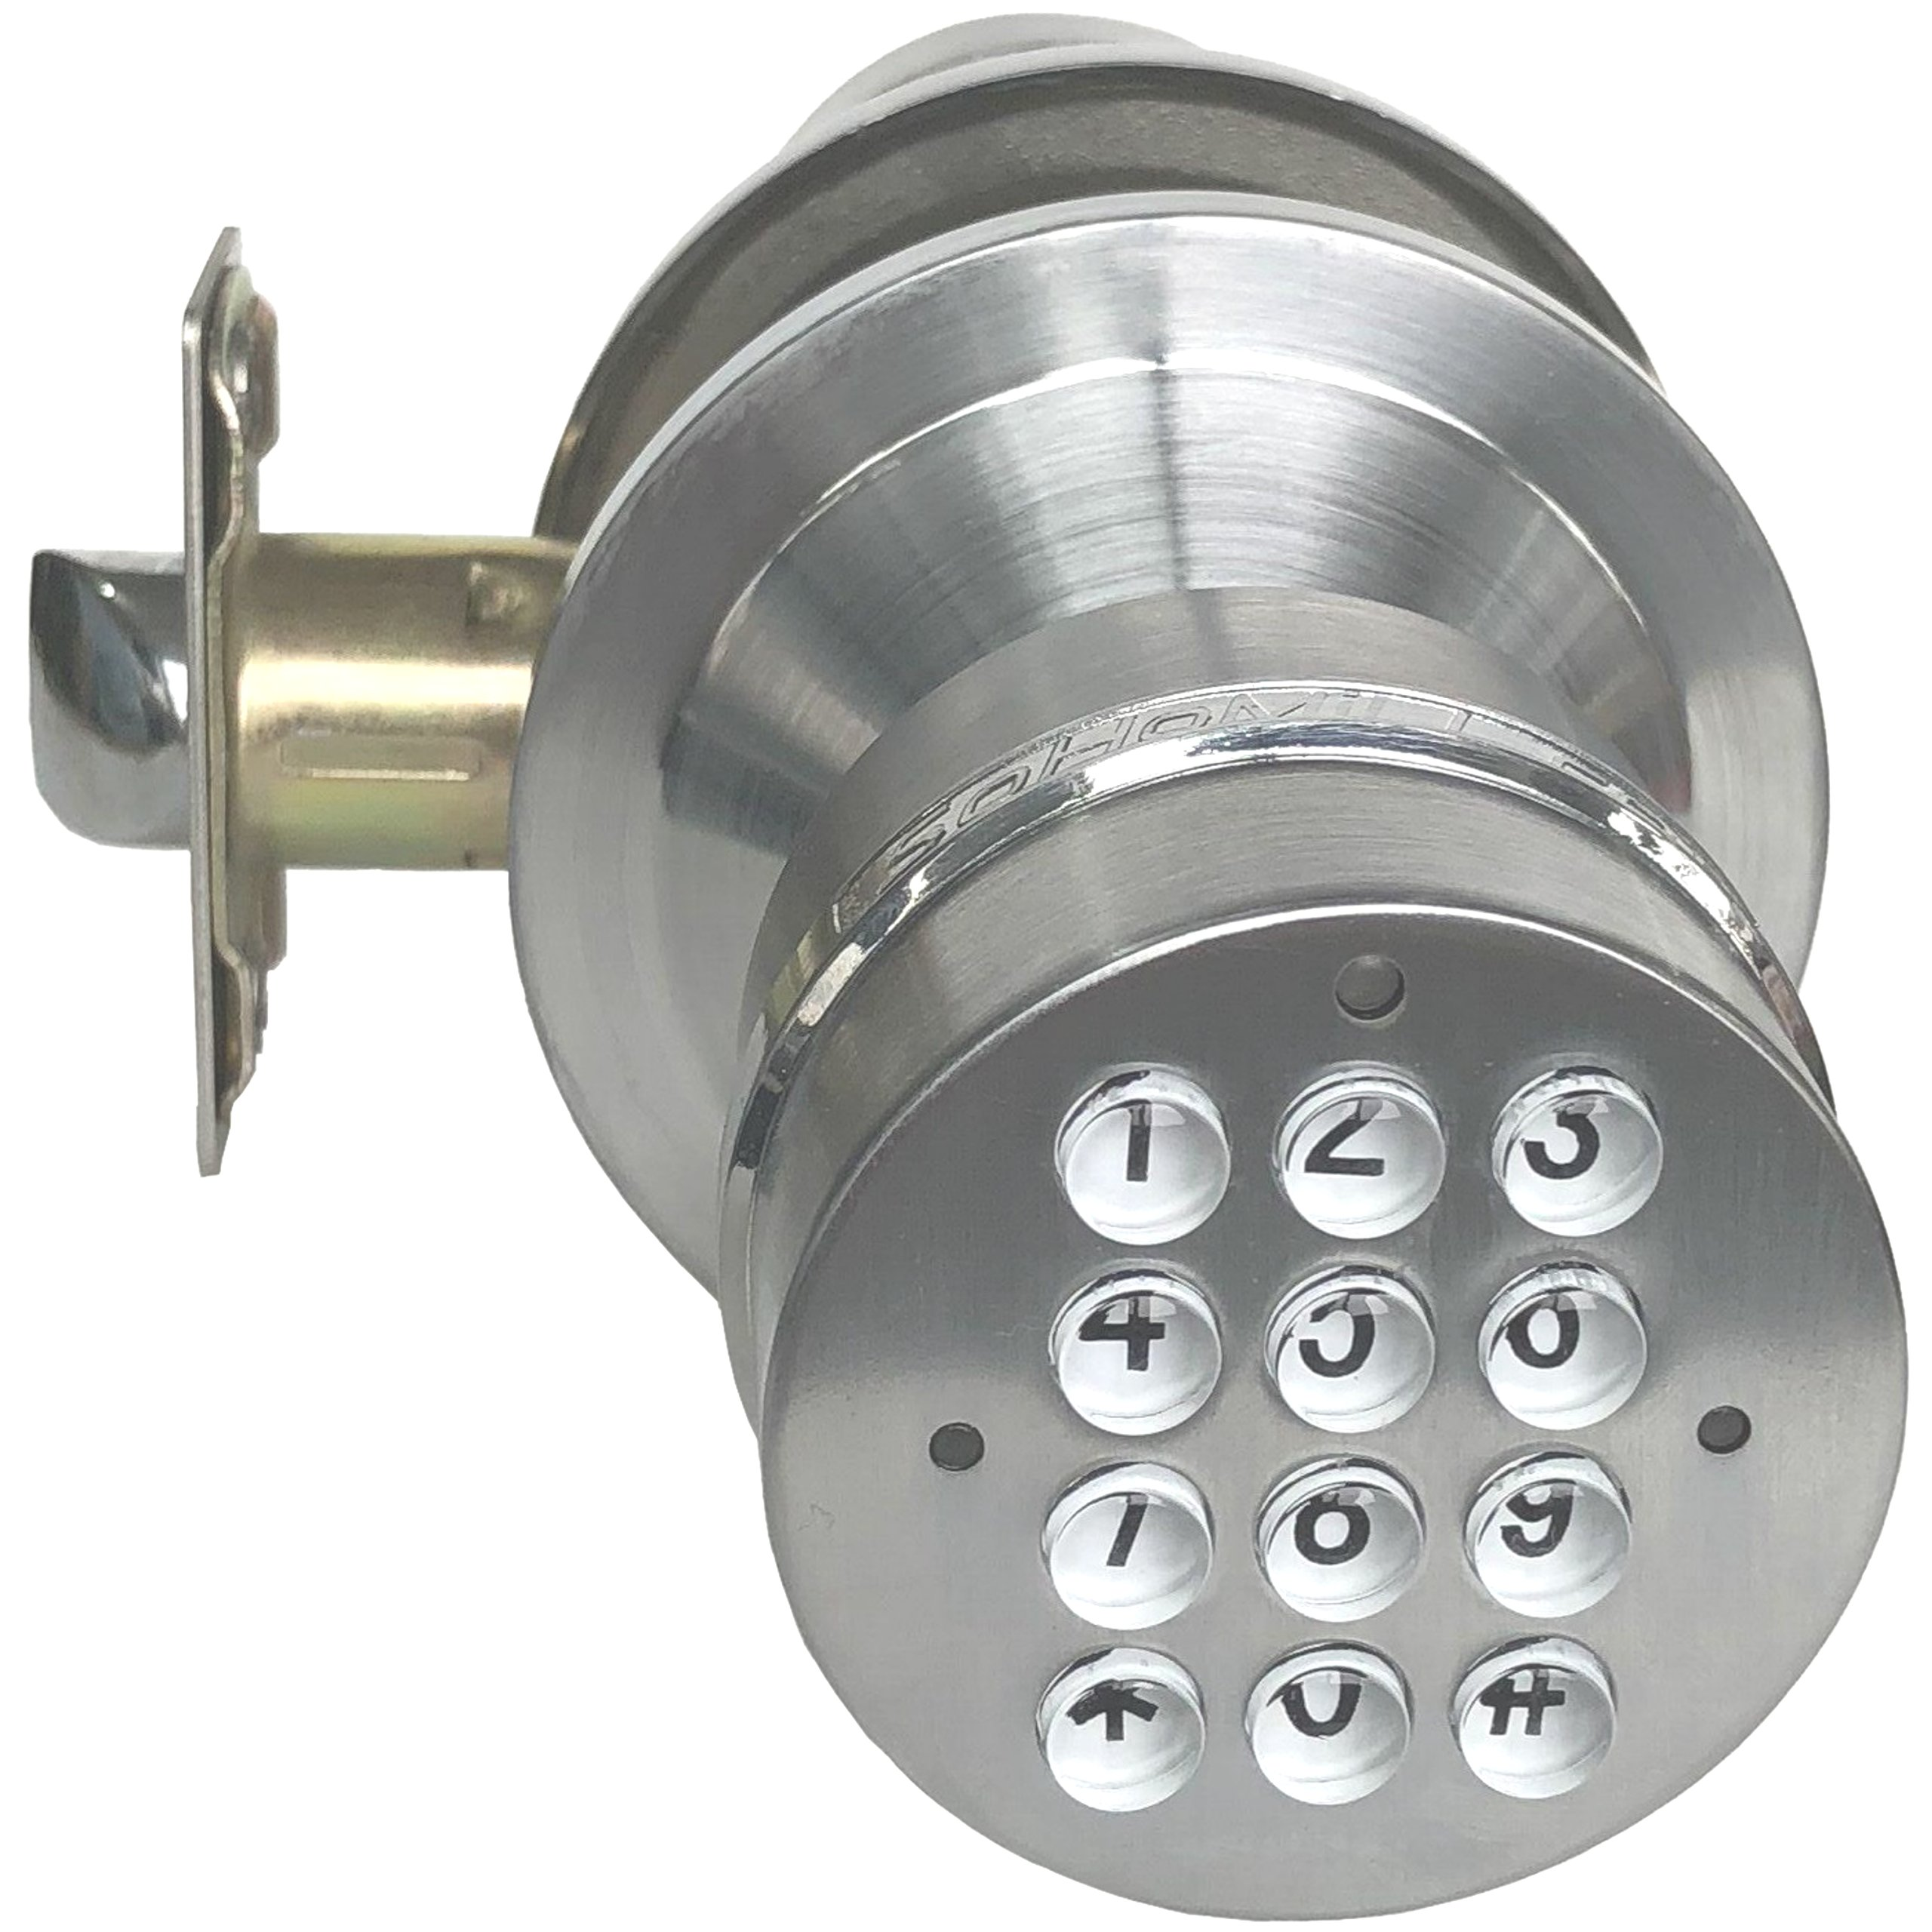 SoHoMiLL YL 99 Electronic Door Knob (Spring Latch LOCK; Not Smartphone Connected; Not Deadbolt), 2 3/8'' x 2 3/4'', Satin Nickel